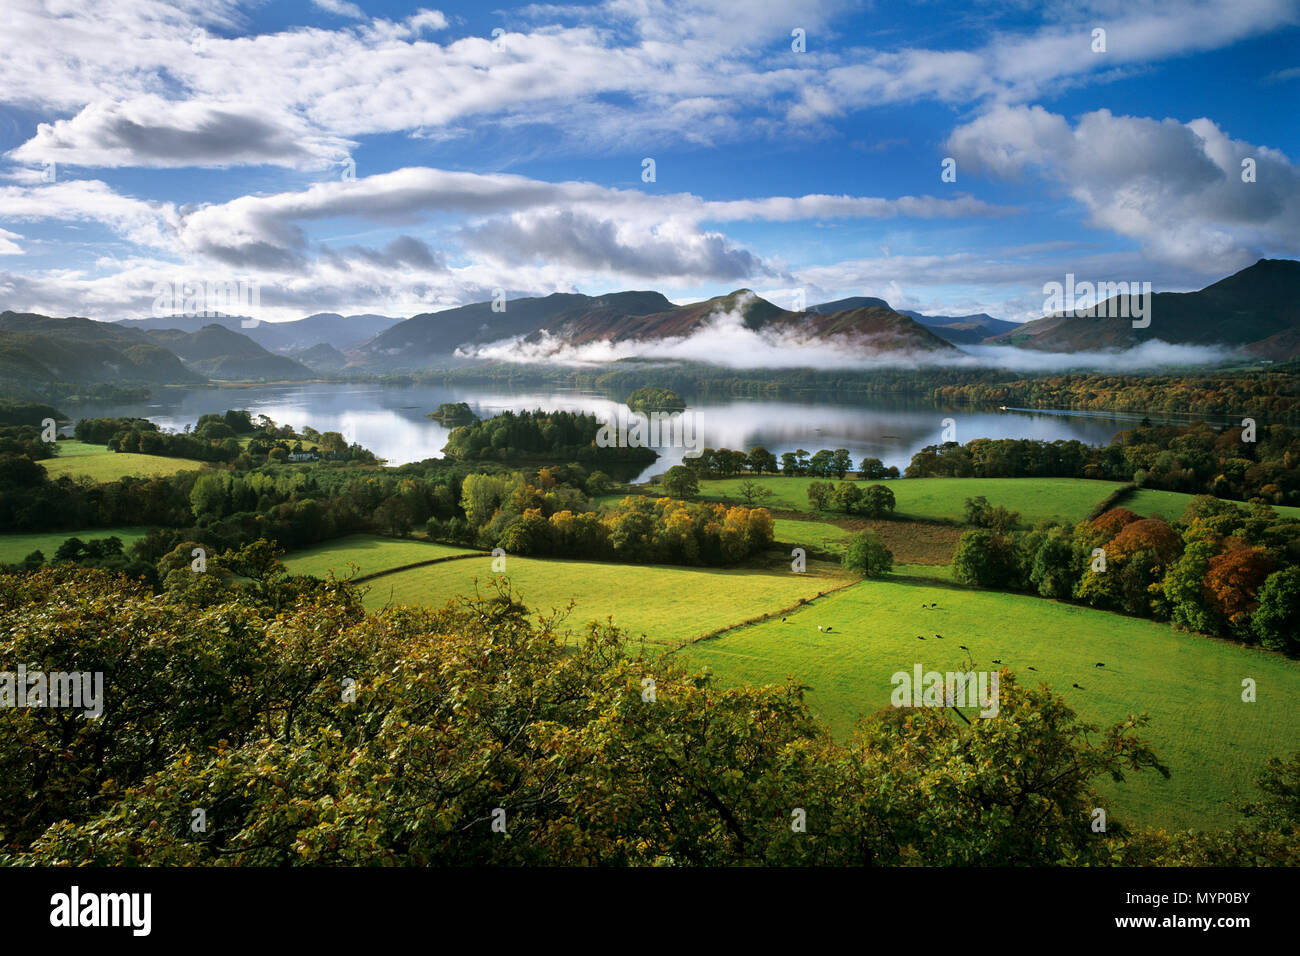 View over Derwent Water lake in morning mist, Keswick, The Lake District, Cumbria, England, United Kingdom, Europe - Stock Image